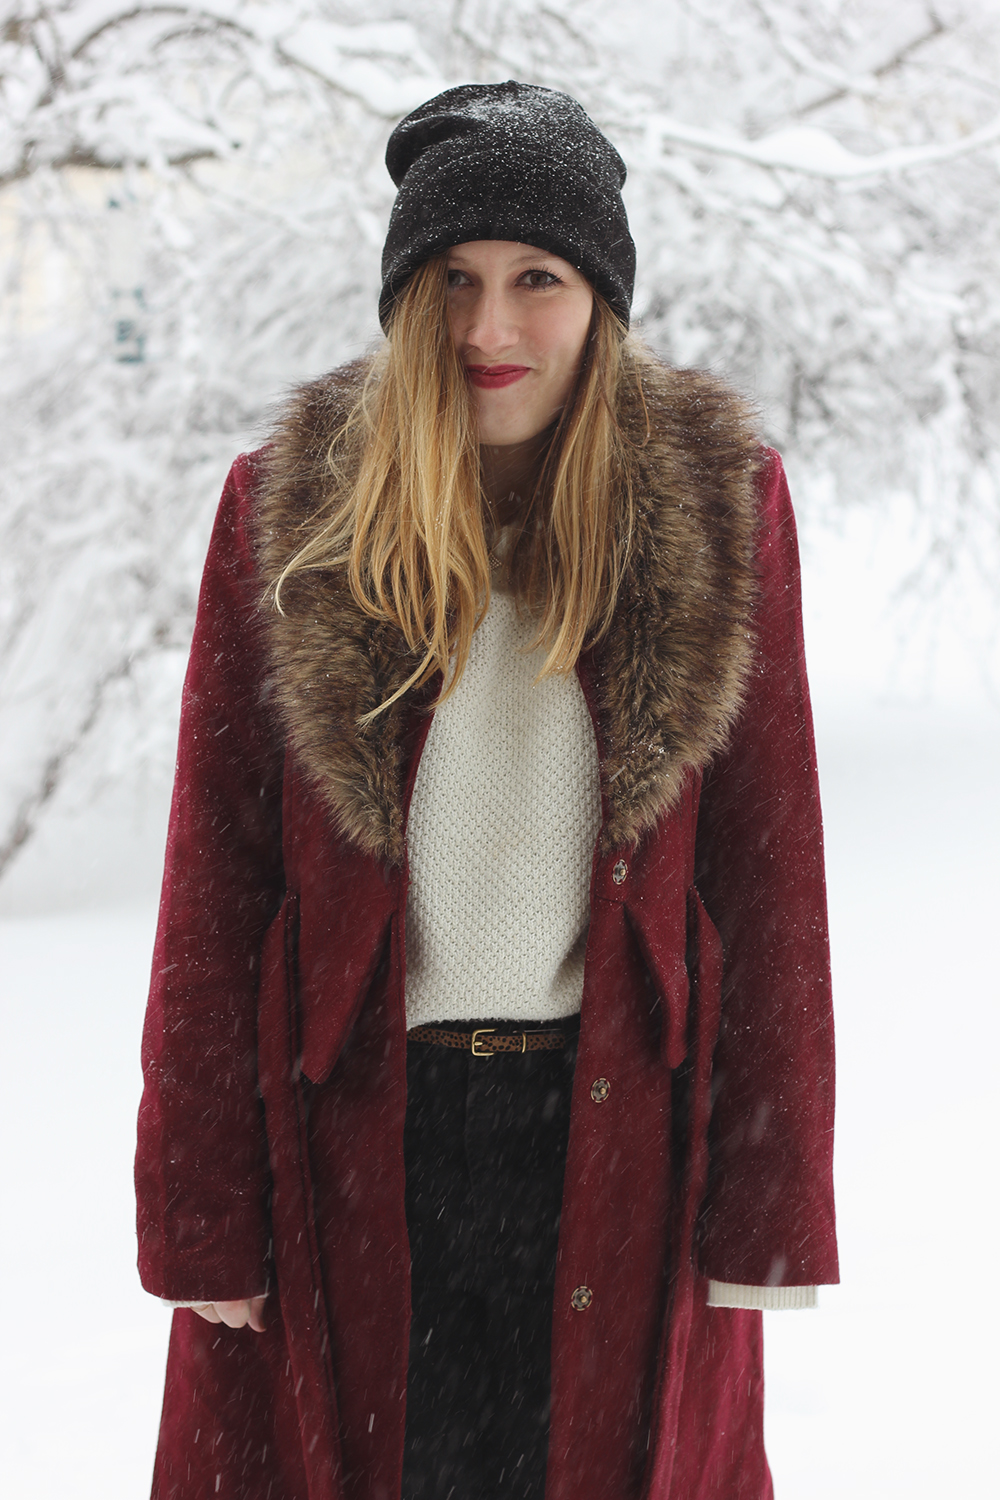 red-coat-fur-collar-snow-day-3